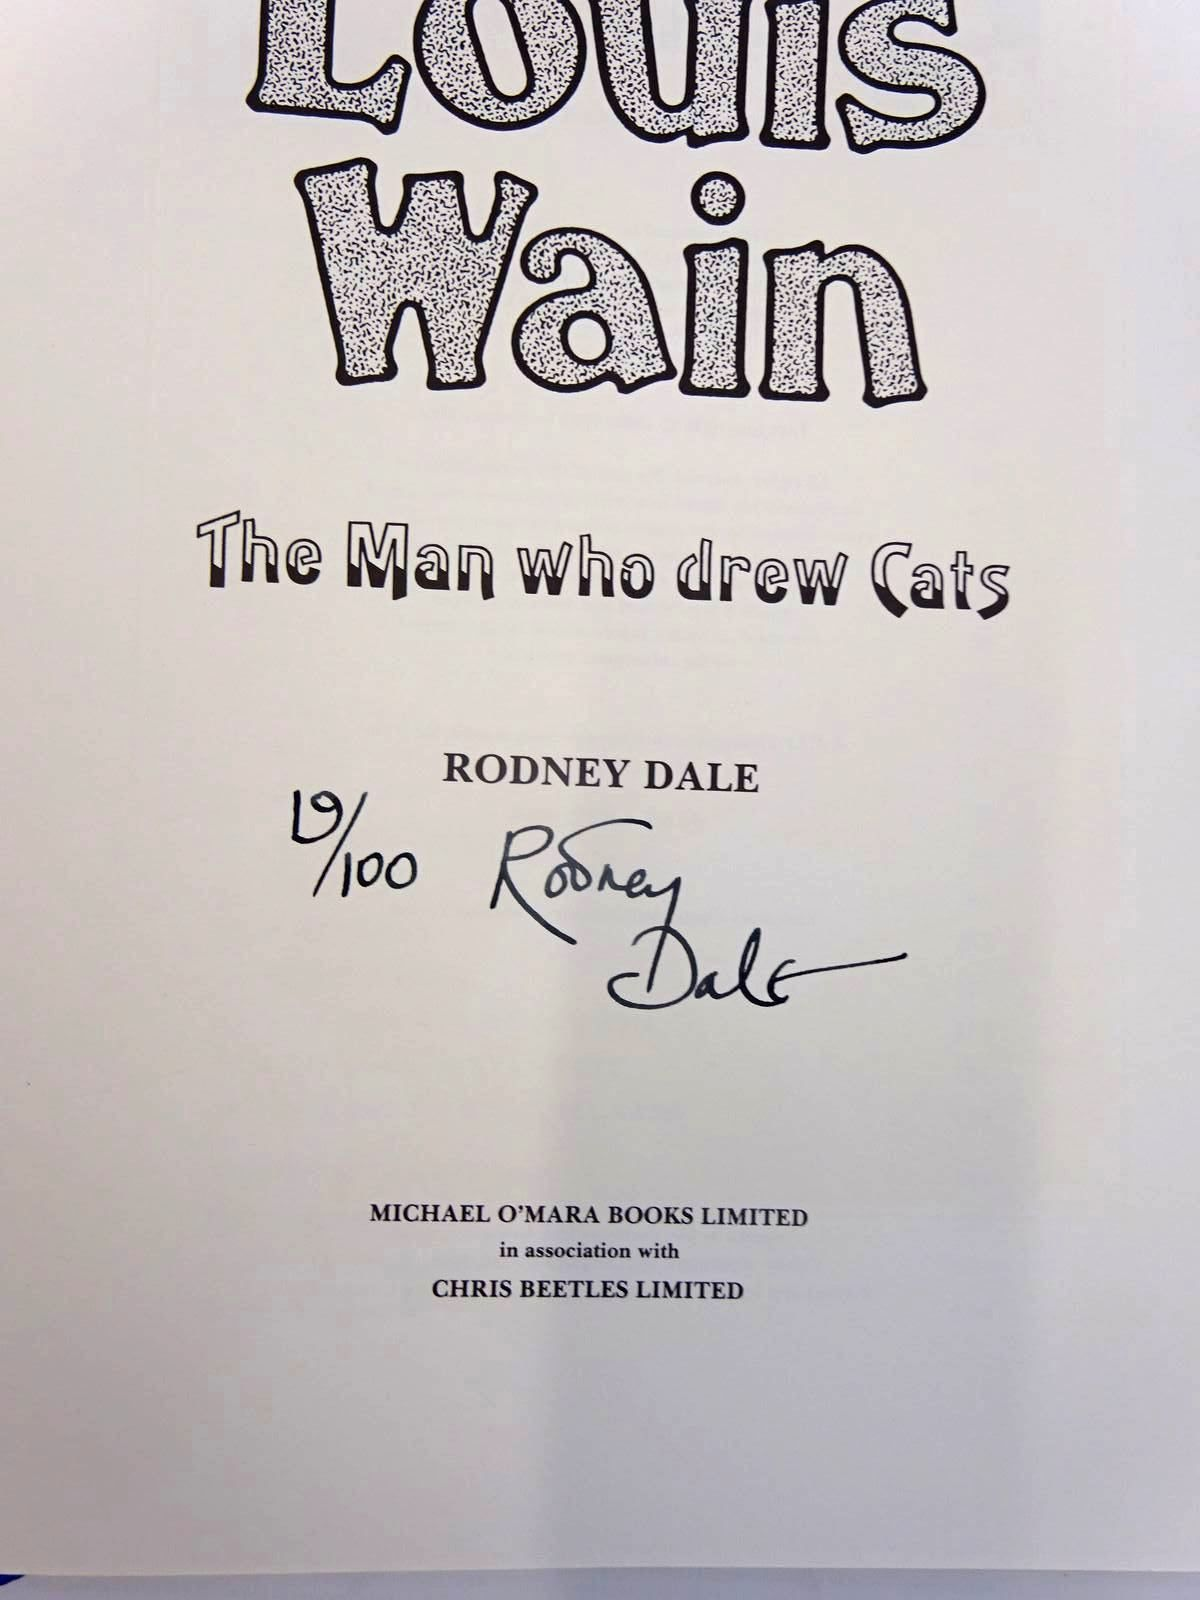 Photo of LOUIS WAIN: THE MAN WHO DREW CATS written by Dale, Rodney illustrated by Wain, Louis published by Michael O'Mara Books Limited, Chris Beetles Ltd. (STOCK CODE: 2130368)  for sale by Stella & Rose's Books